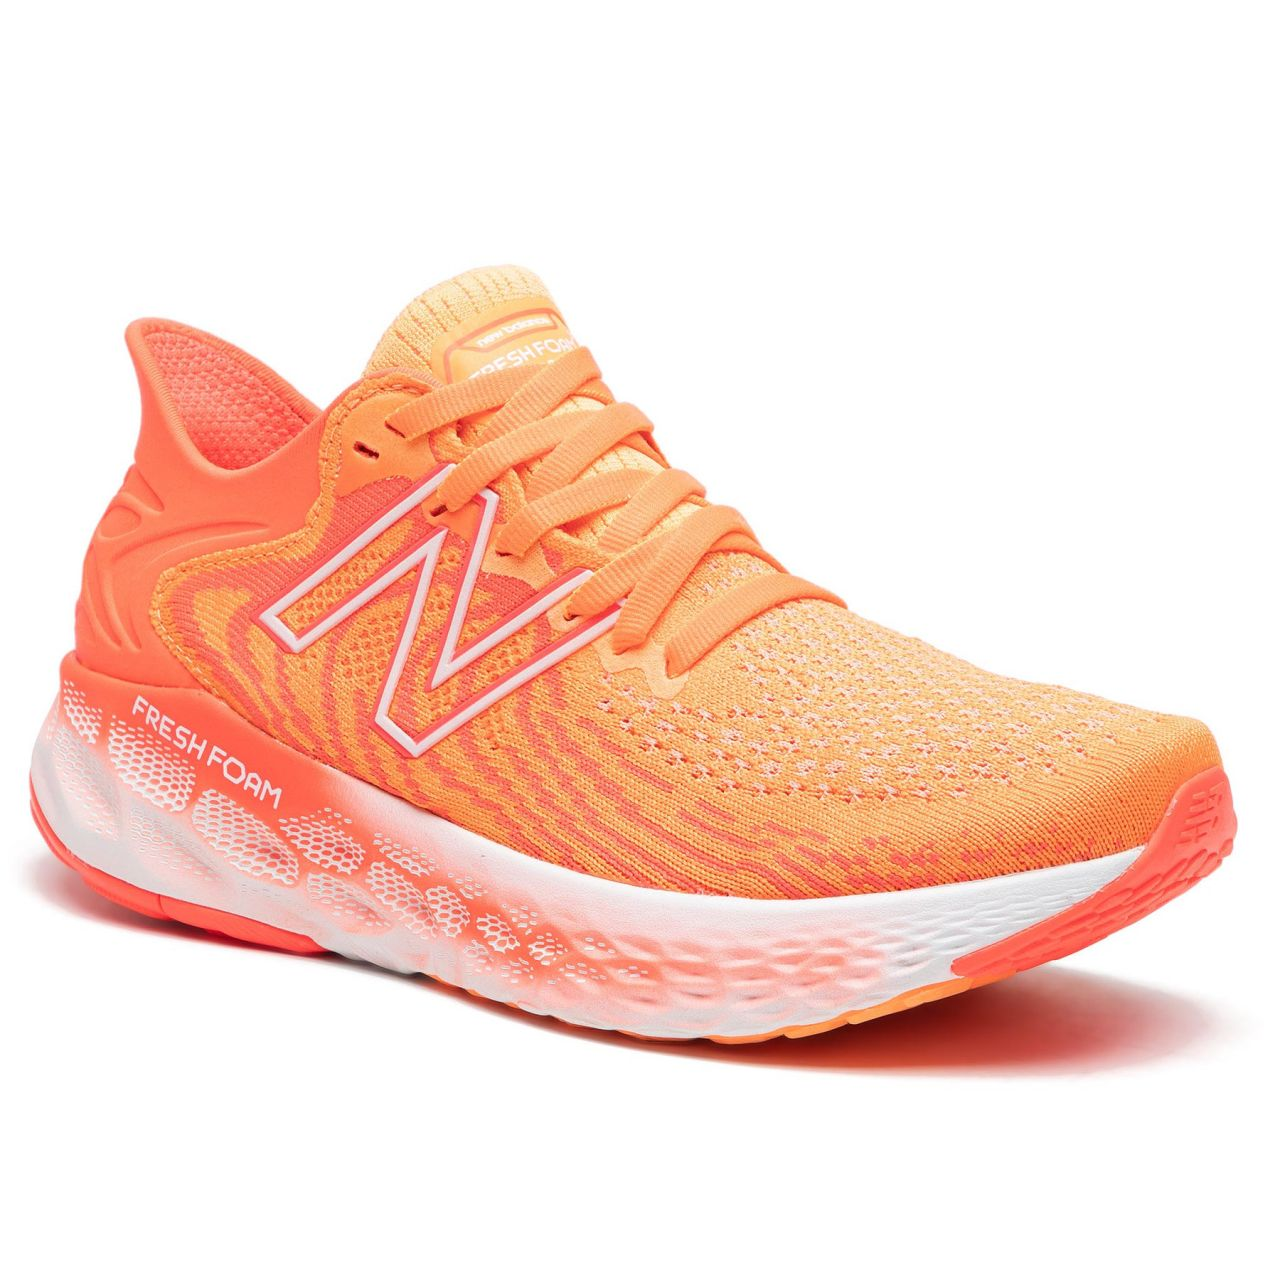 NEW BALANCE 1080 V11 CITRUS PUNCH  Chaussures de running